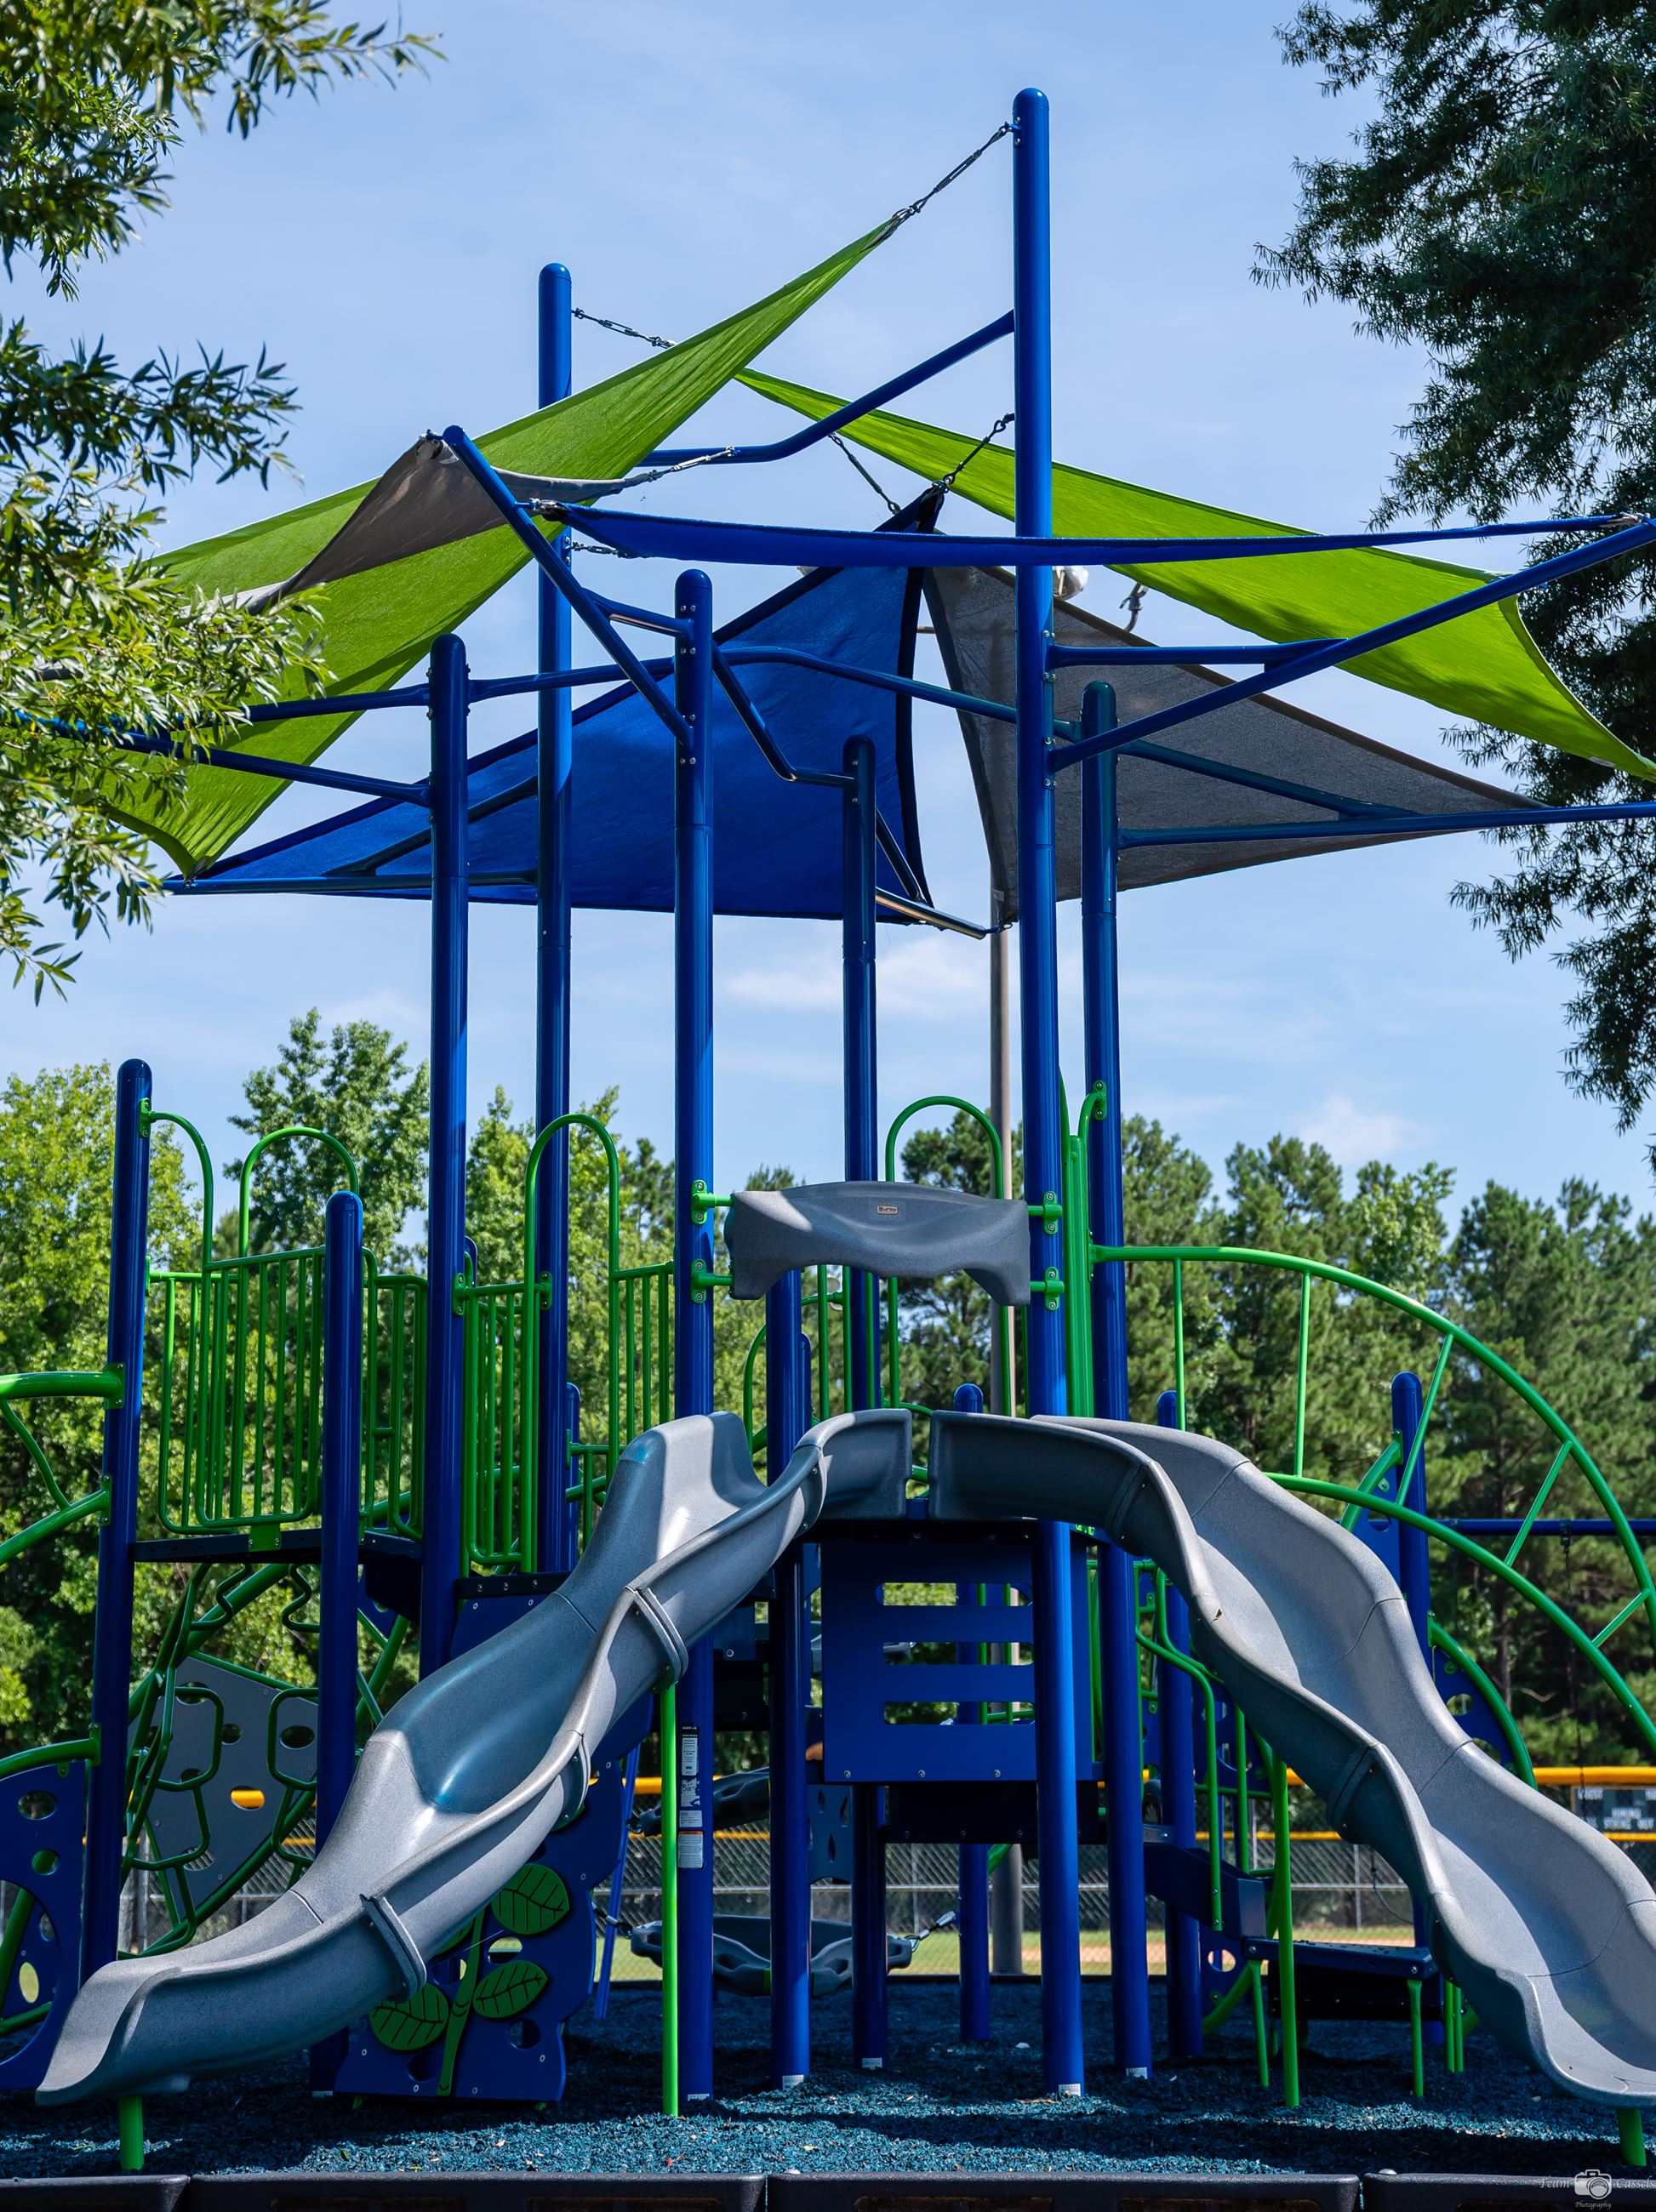 Playground at Action Park